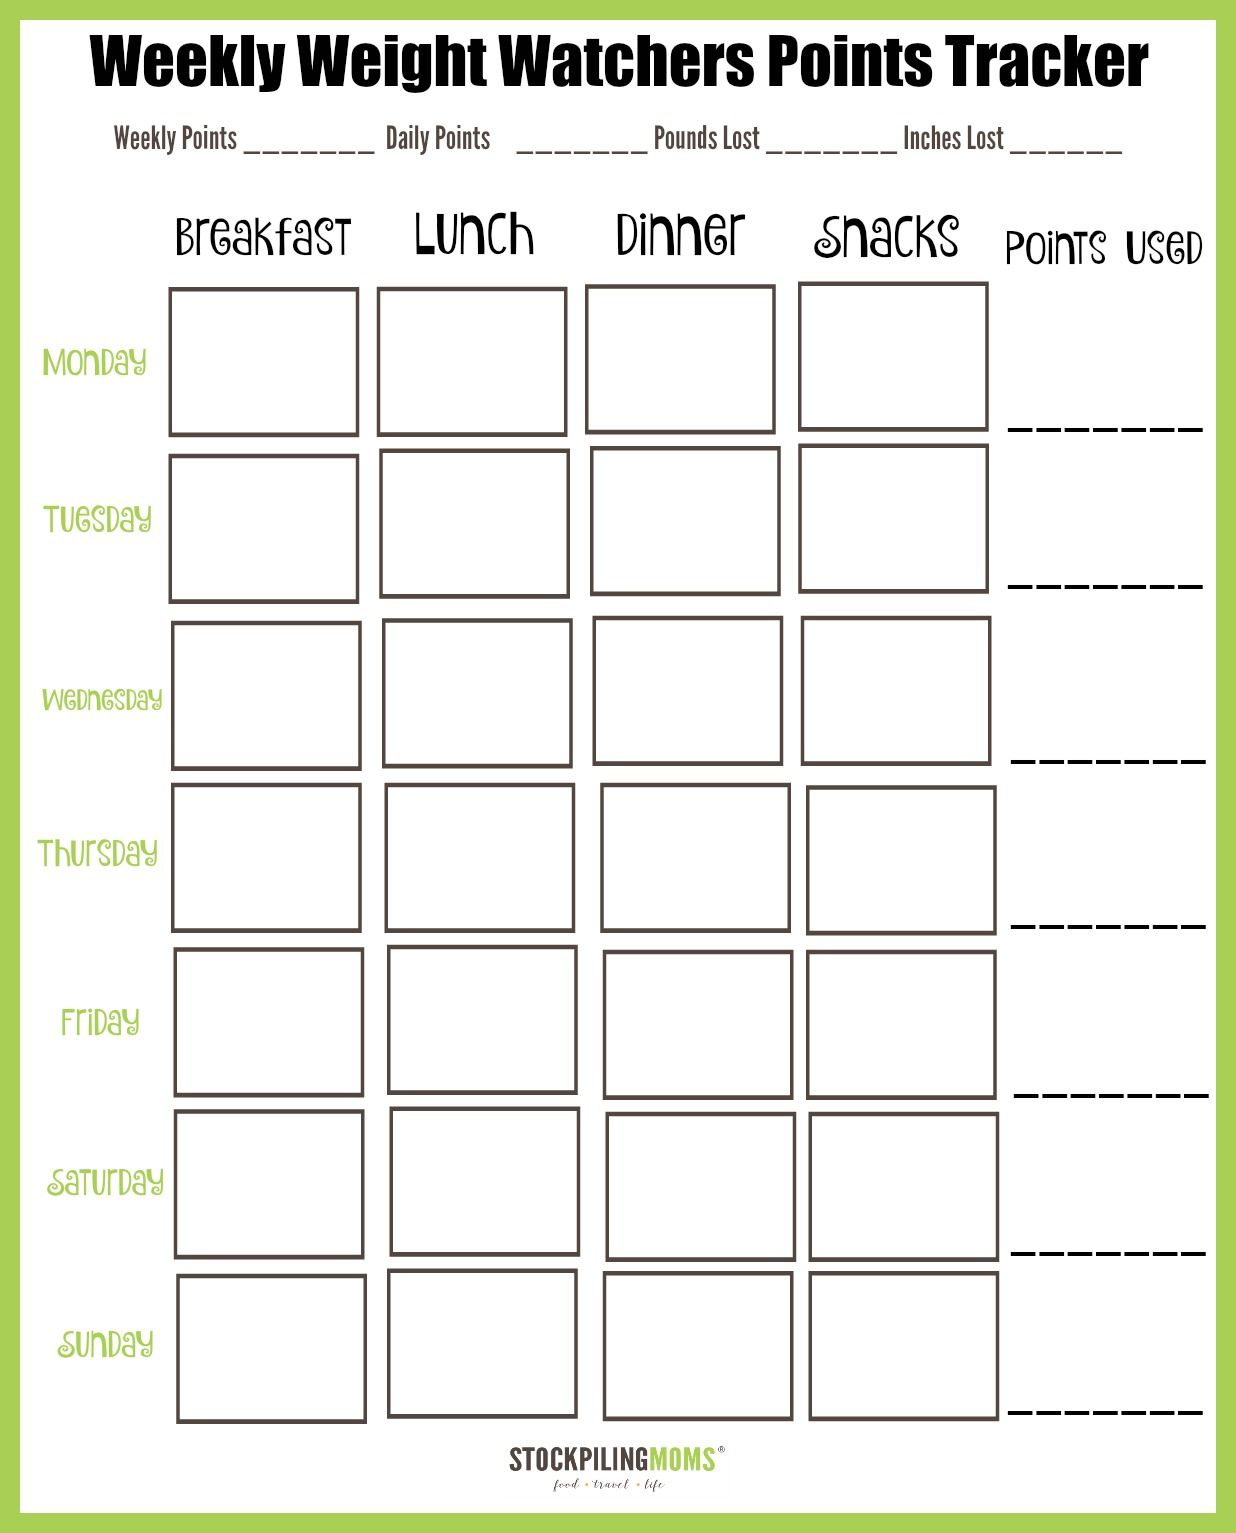 Weight watchers weekly points tracker free printable also healthy rh pinterest